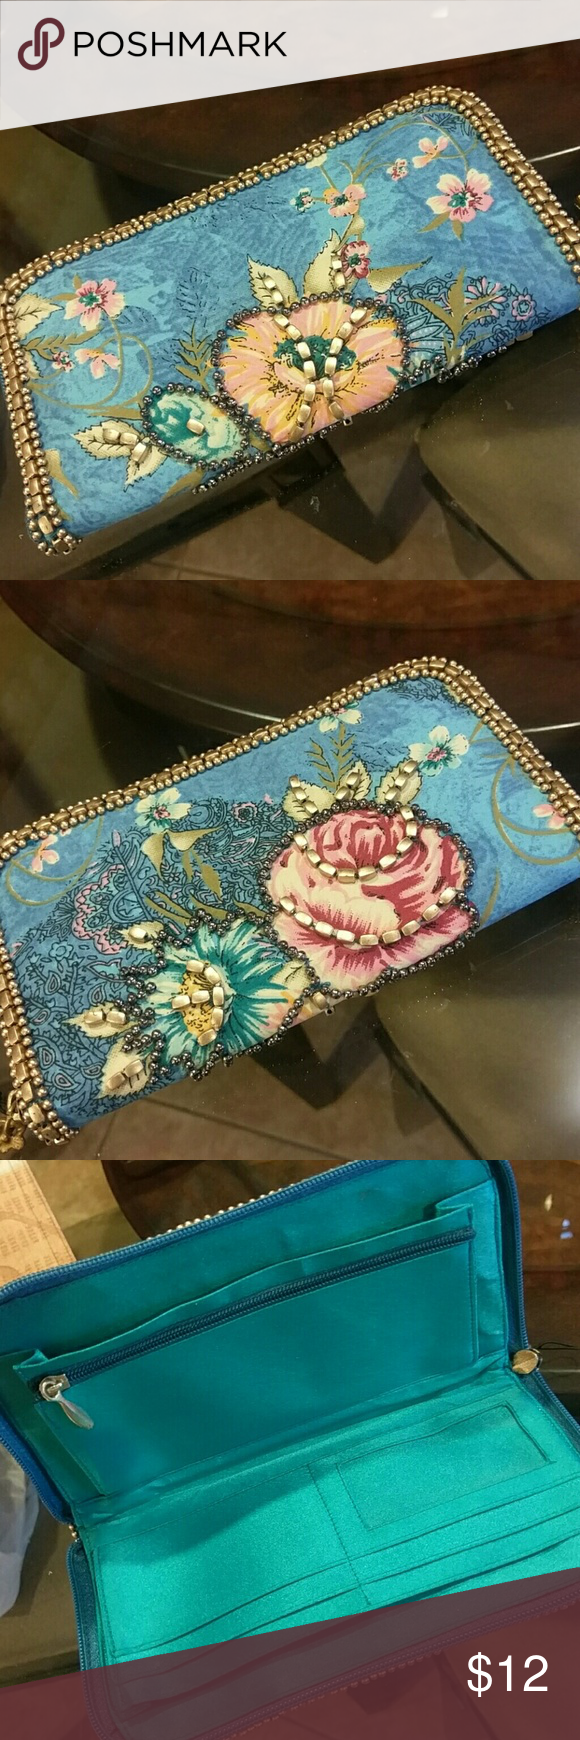 Women's wallet Blue with pink flowers outlined with grey beads. Lined with turquoise colored material. Never used!! Bags Wallets